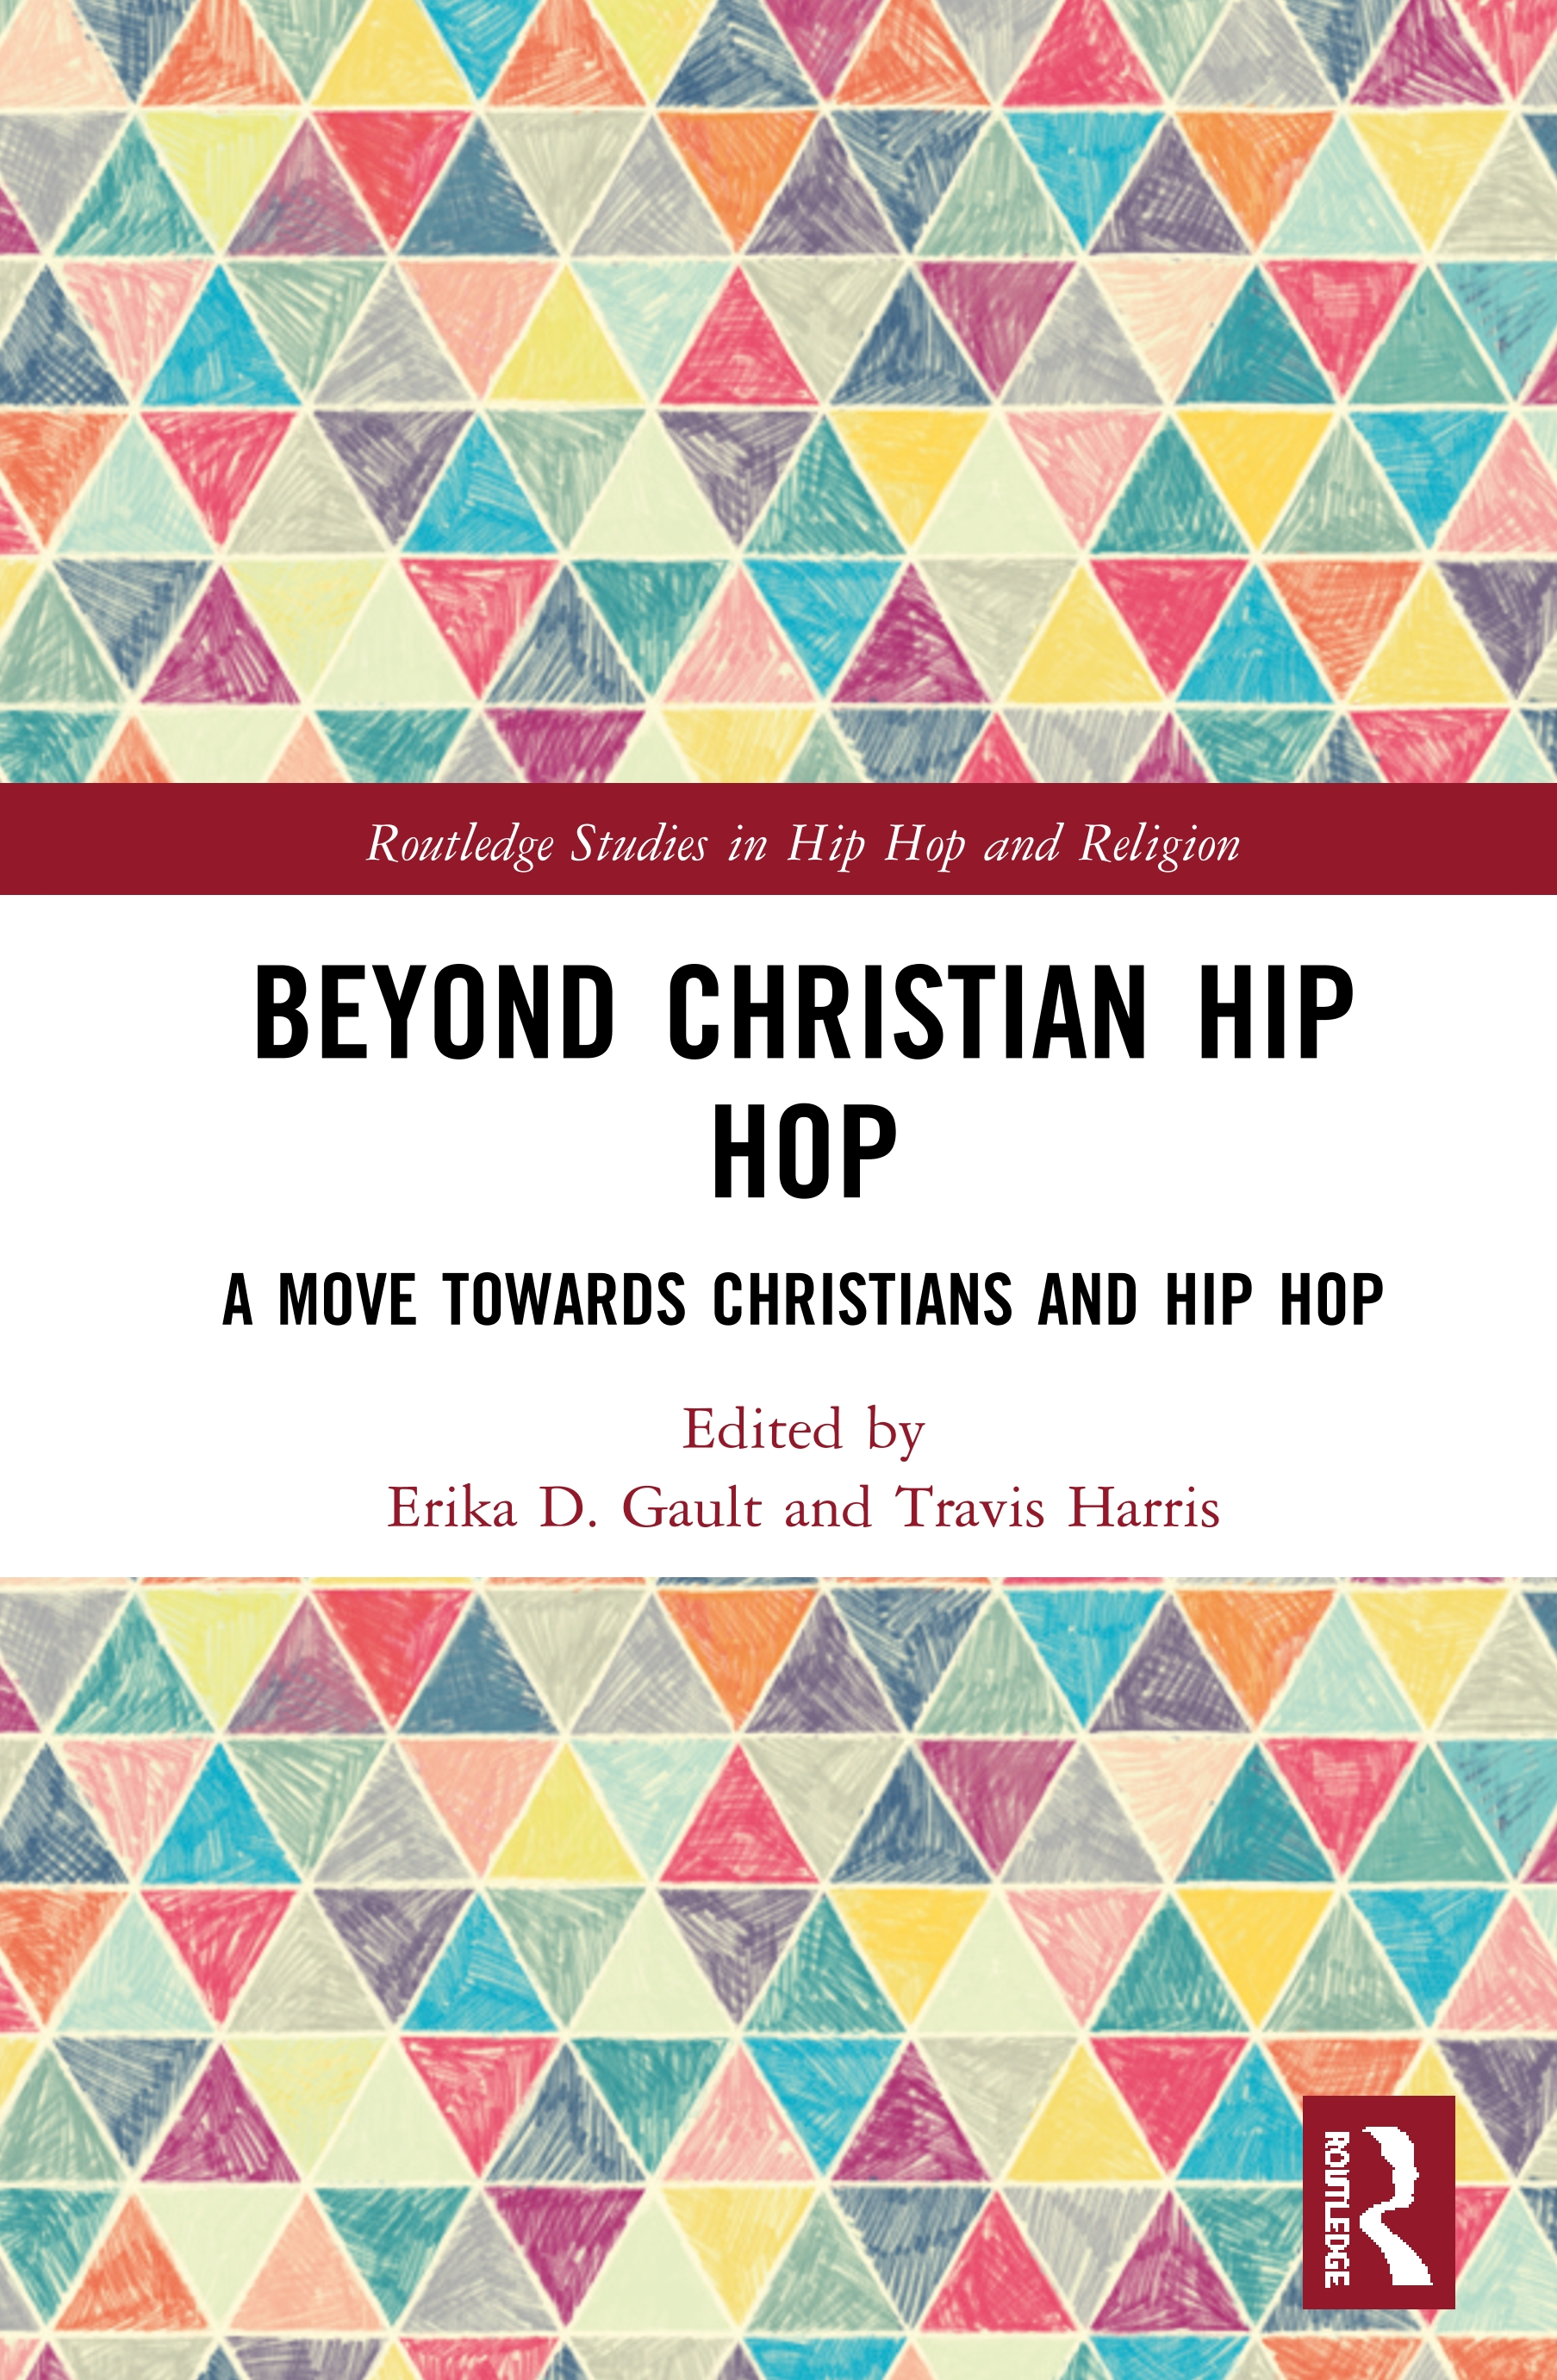 Beyond Christian Hip Hop: A Move Towards Christians and Hip Hop book cover